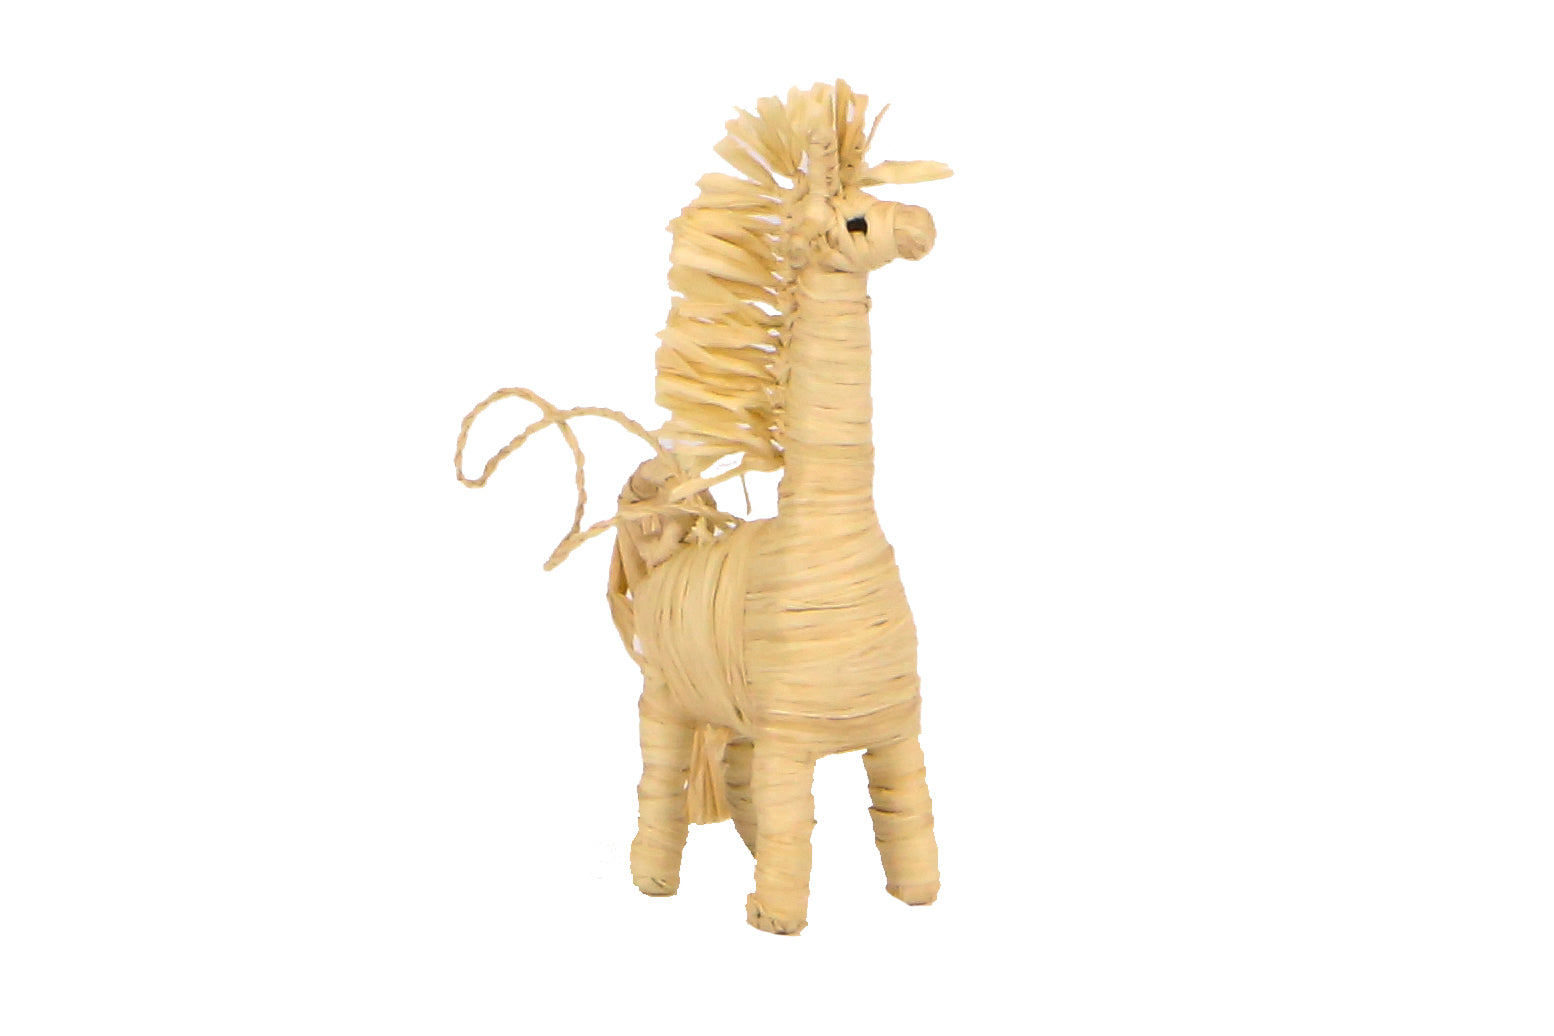 Natural Raffia Giraffe Ornament - KAZI